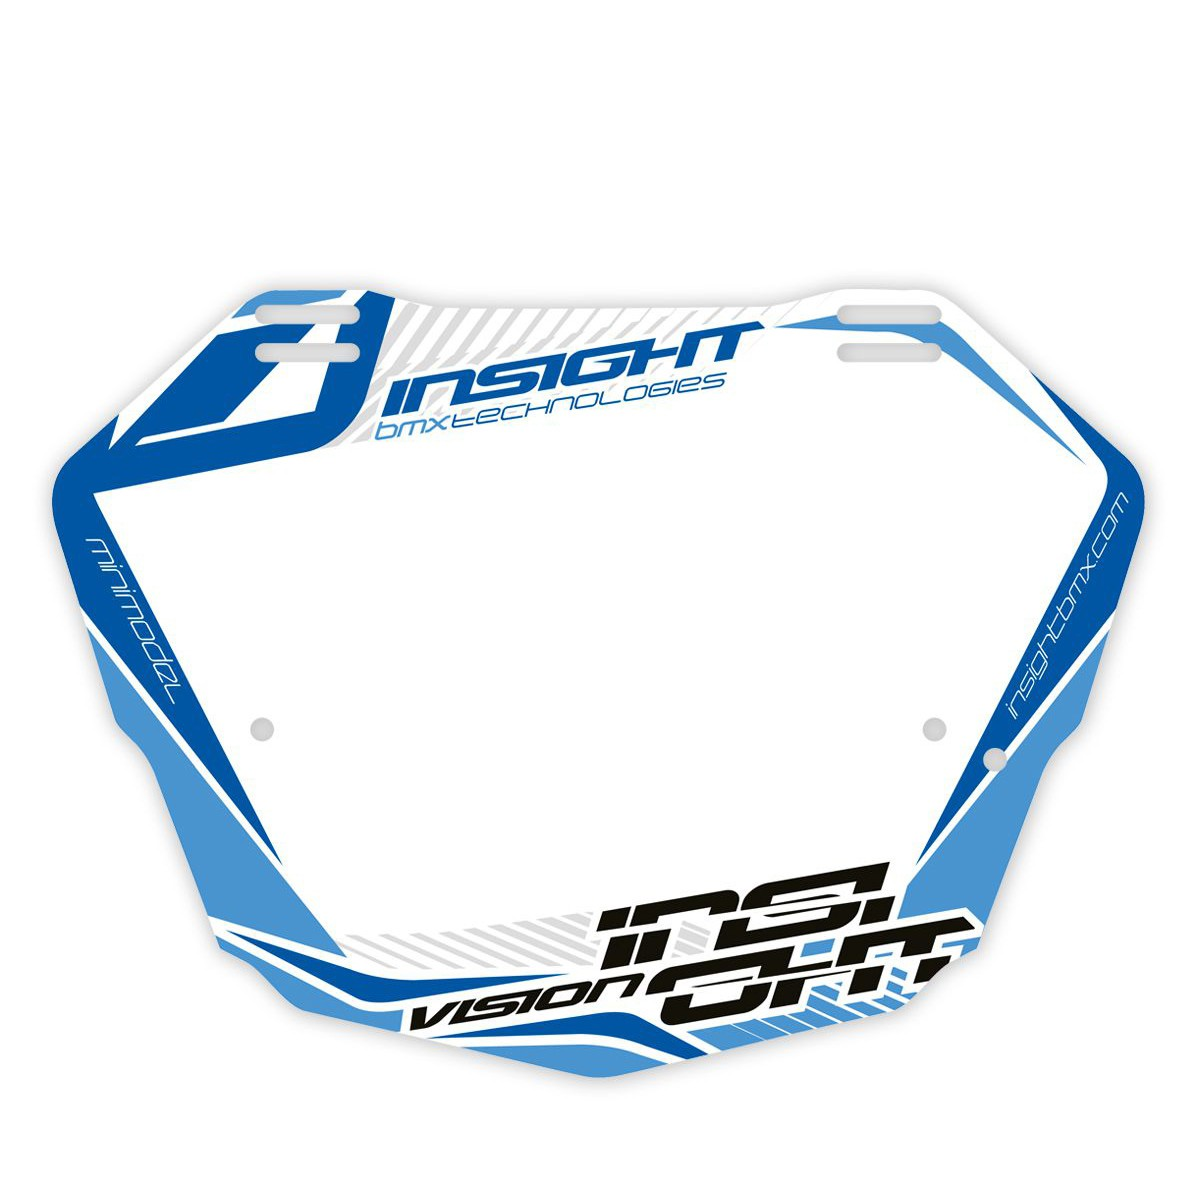 INSIGHT NUMBER PLATE VISION 2D PRO